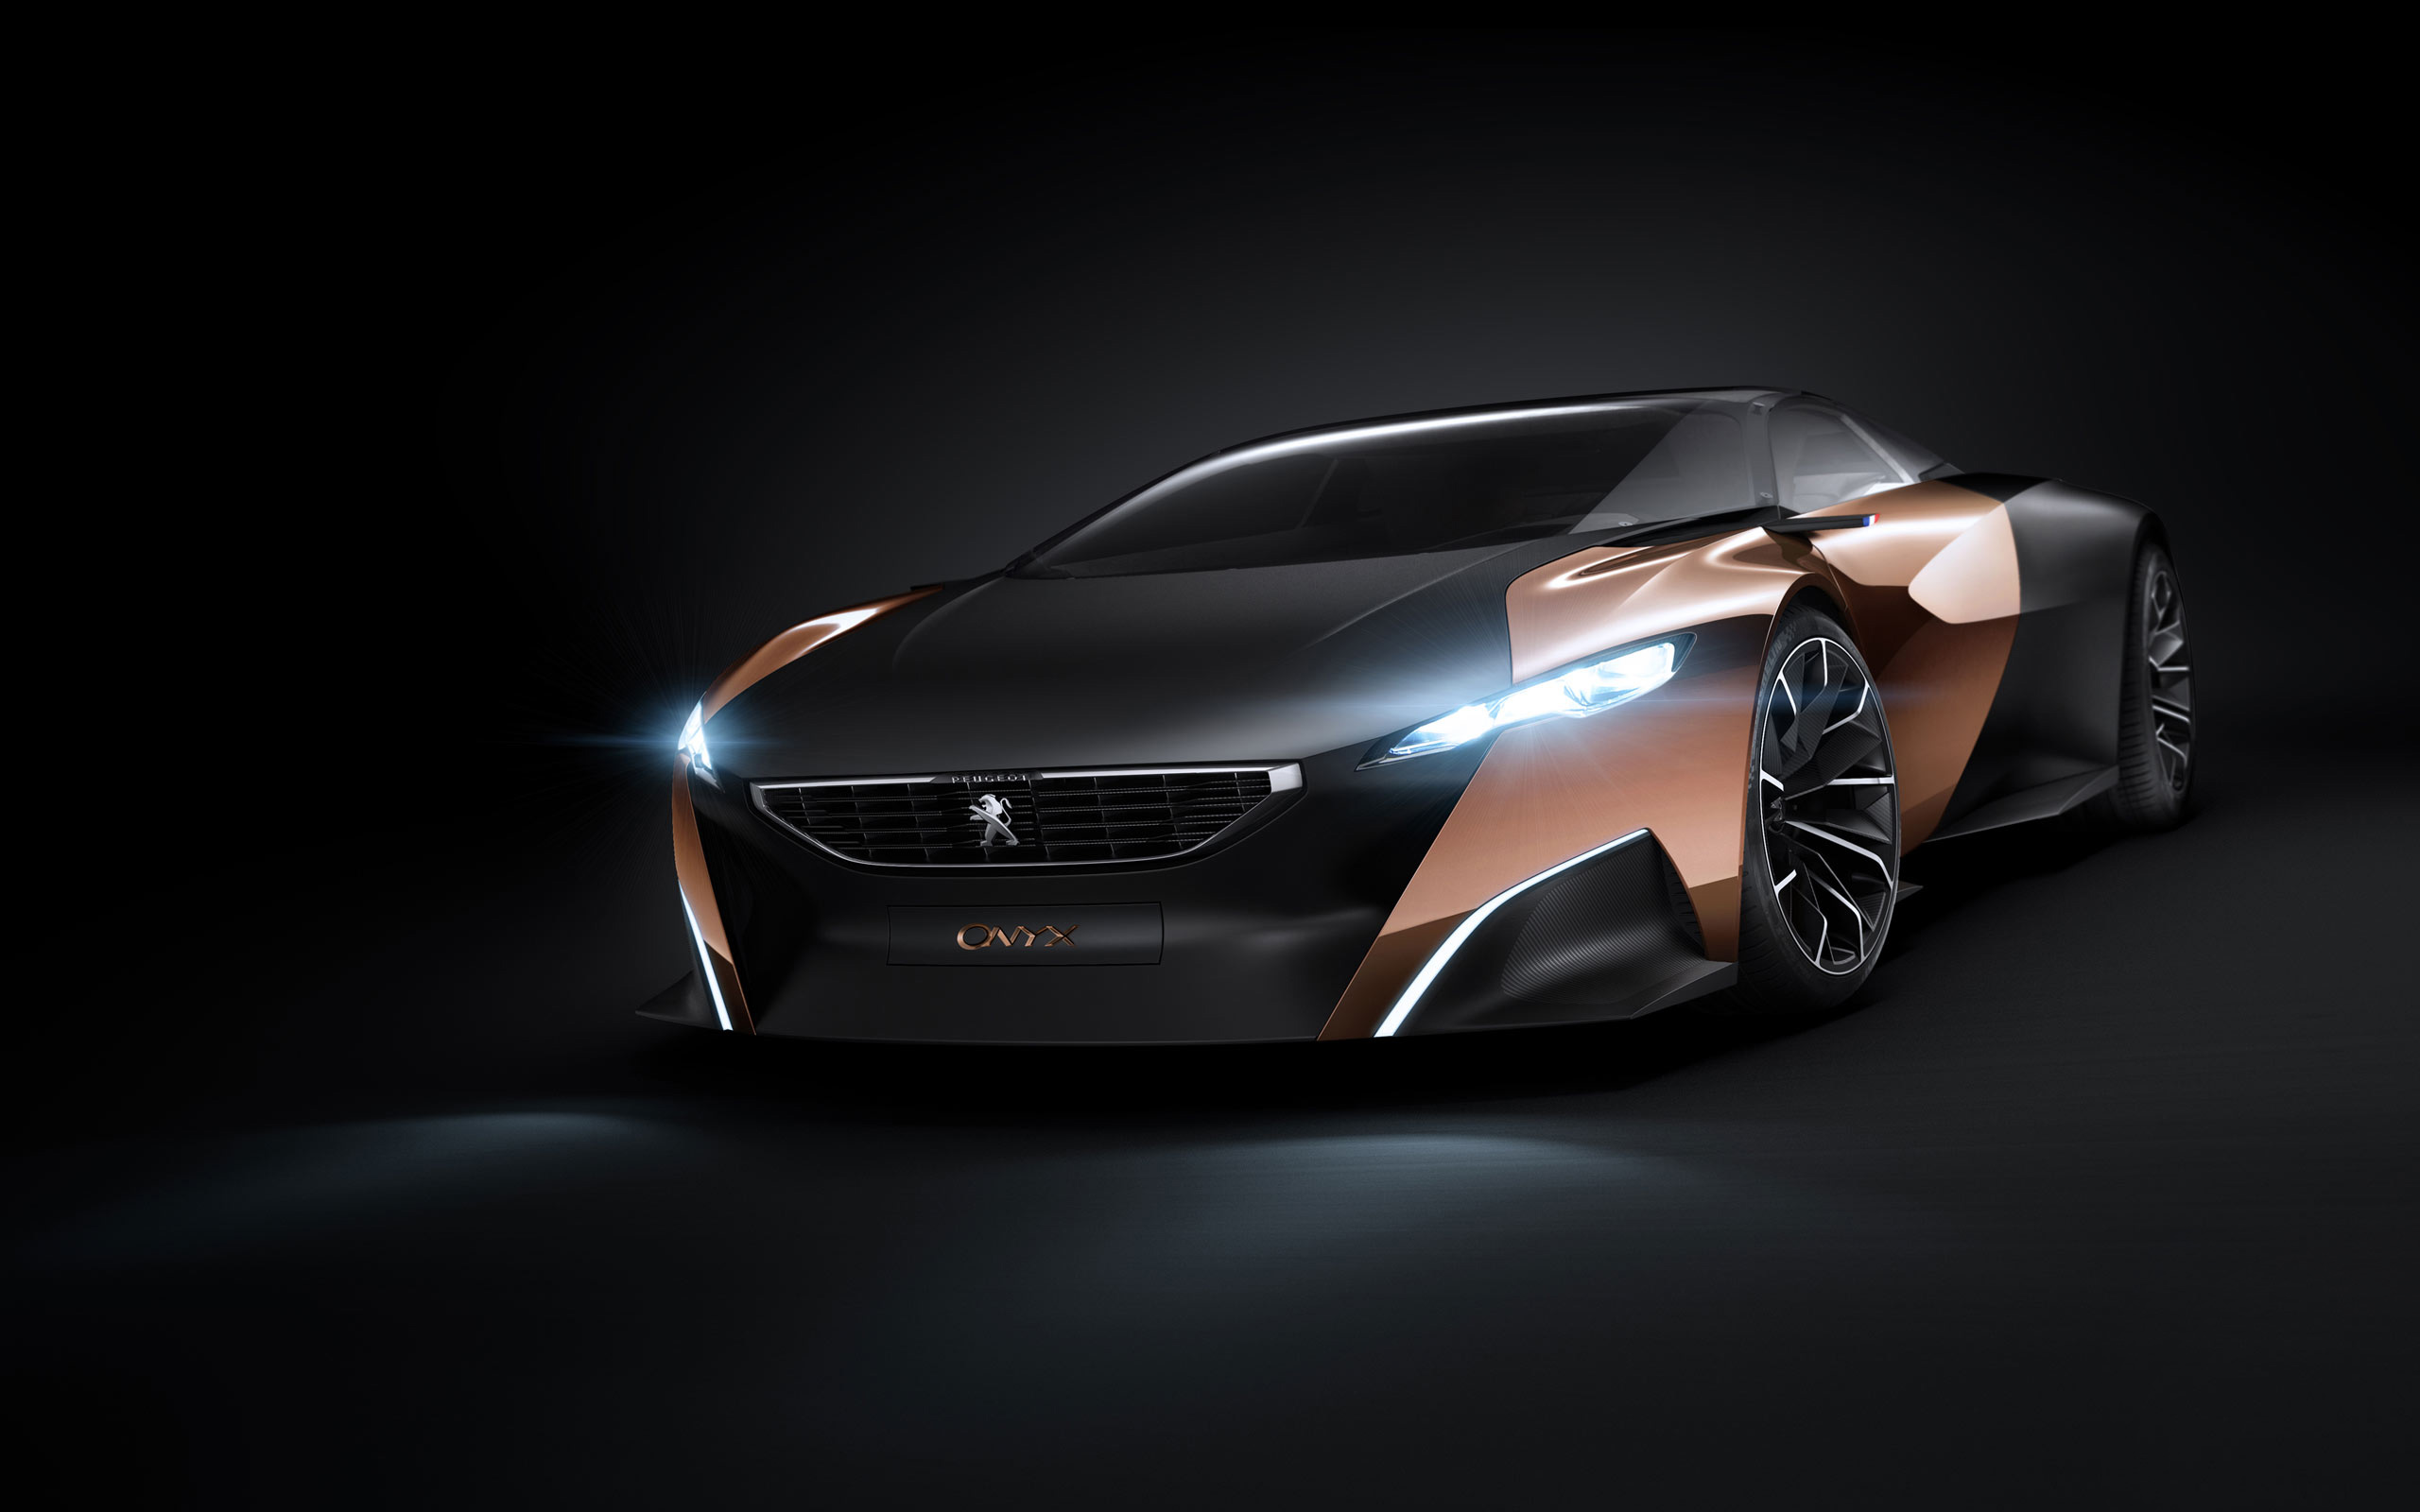 Design Concepts Wallpaper : Peugeot onyx concept car wallpaper hd wallpapers